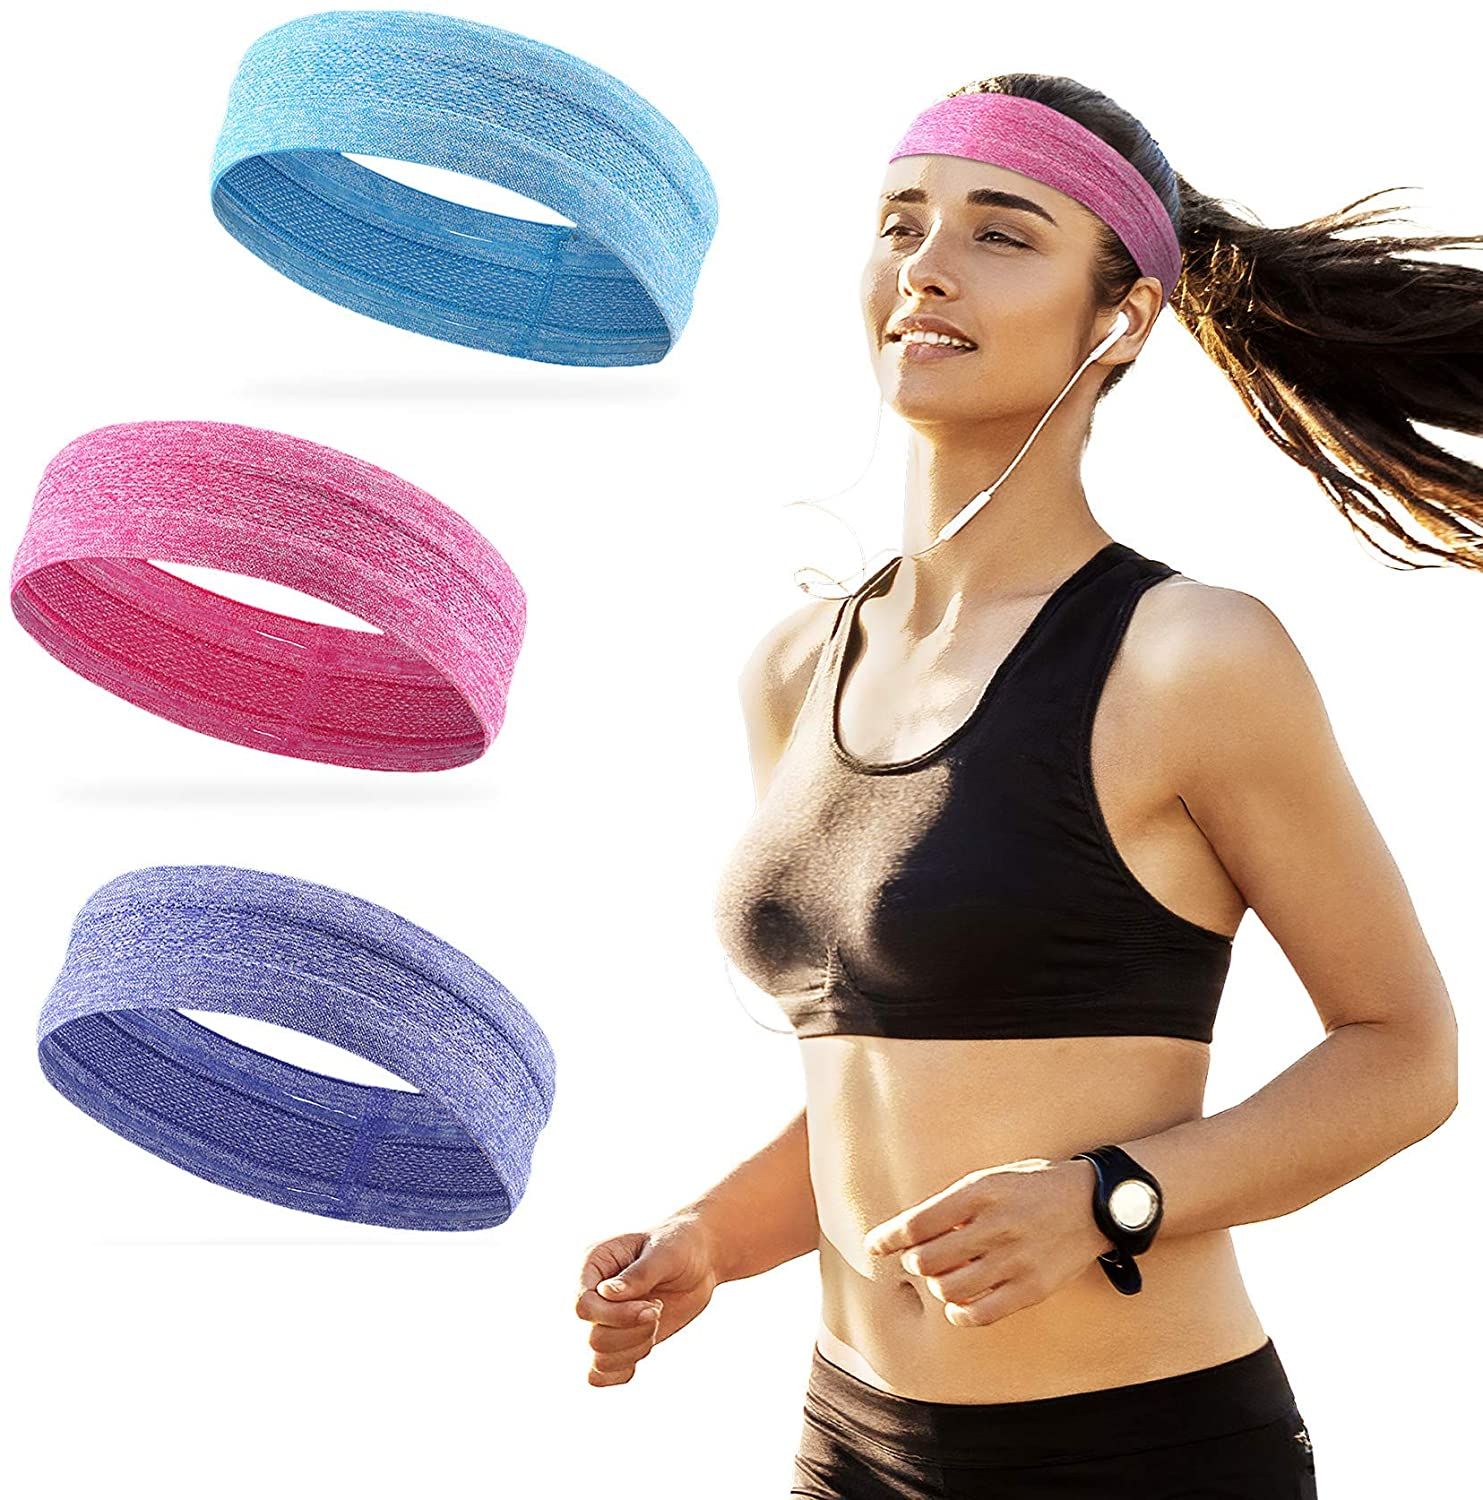 Alien Pros Bling Shiny Headbands for Women Pack of 3 - Never let Sweats Blocking Your Sight Again - Quick Drying Sweat Bands Headbands - Pink Purple Blue Pack of 3